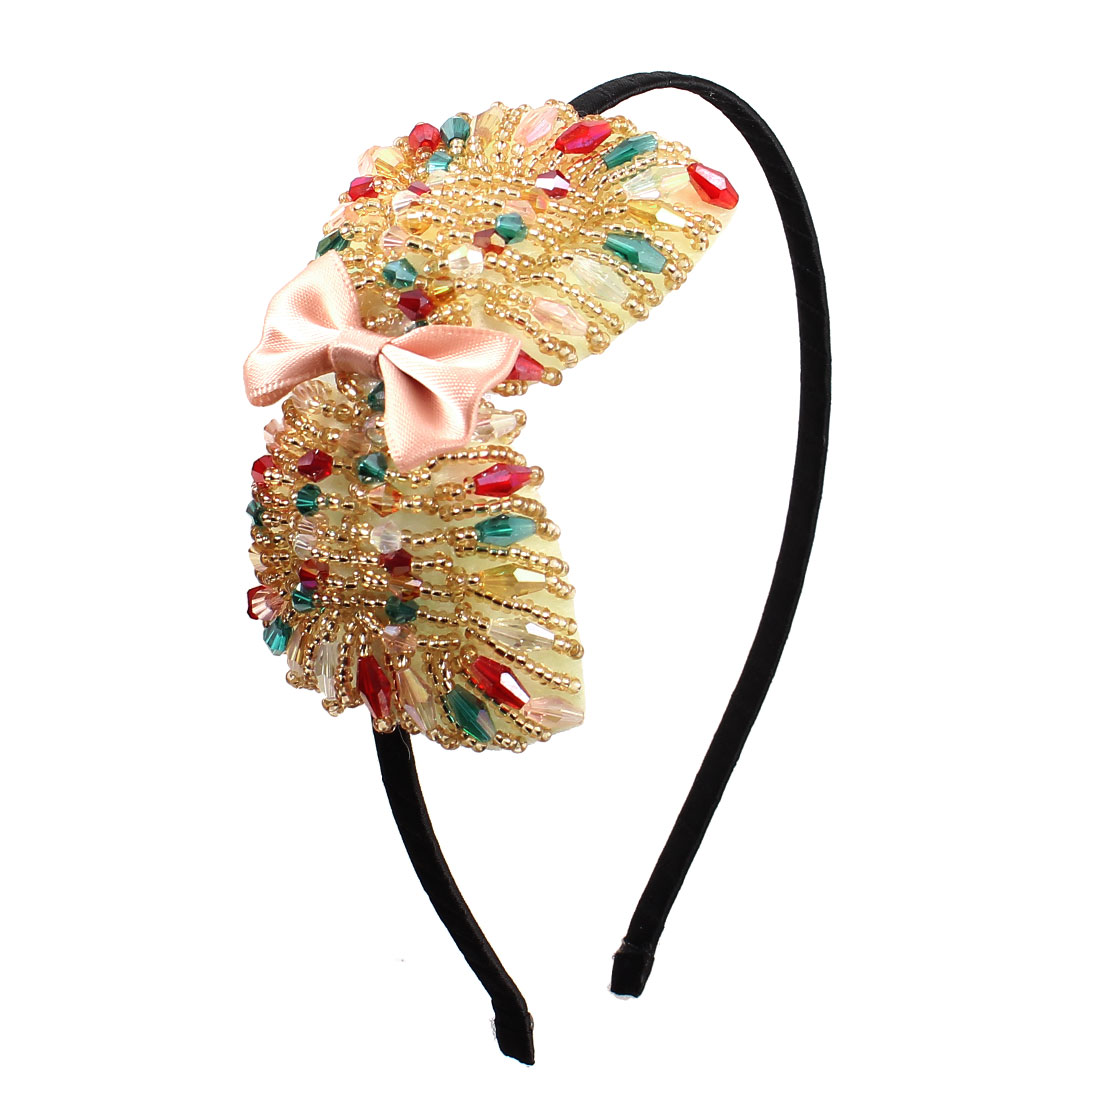 Ladies Assorted Color Beads Bowknot Decor Handcraft Hairband Hair Hoop